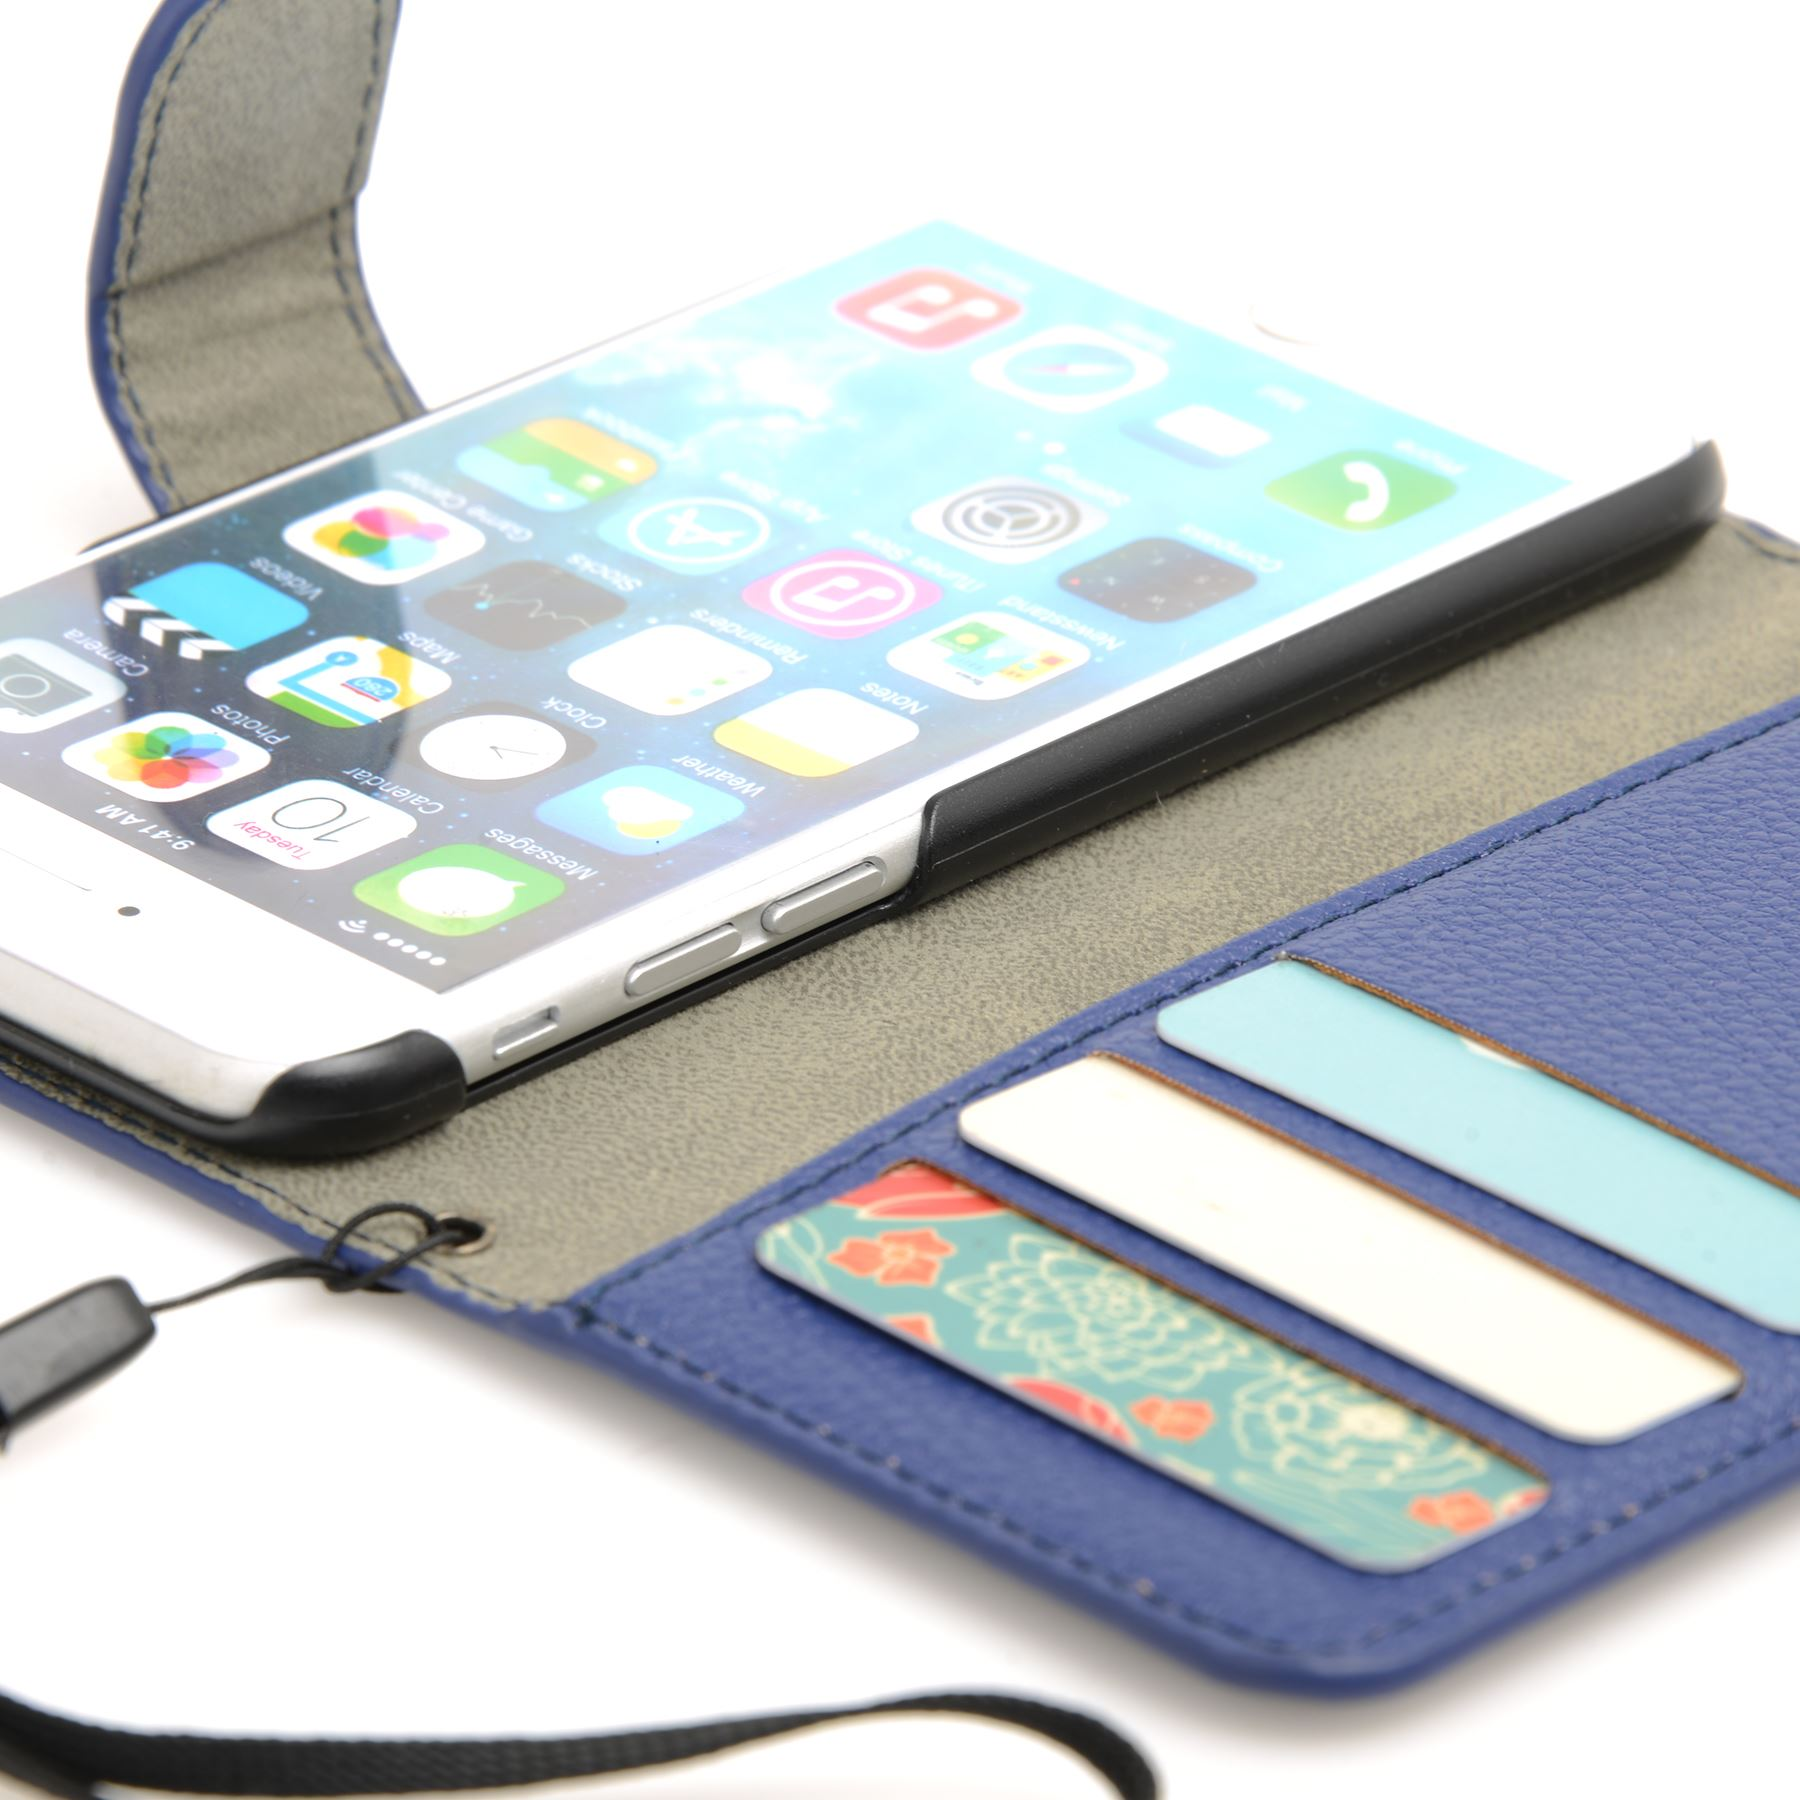 thumbnail 18 - For Apple iPhone 6s 6 Case Premium Textured Leather Wallet Madcase Cover